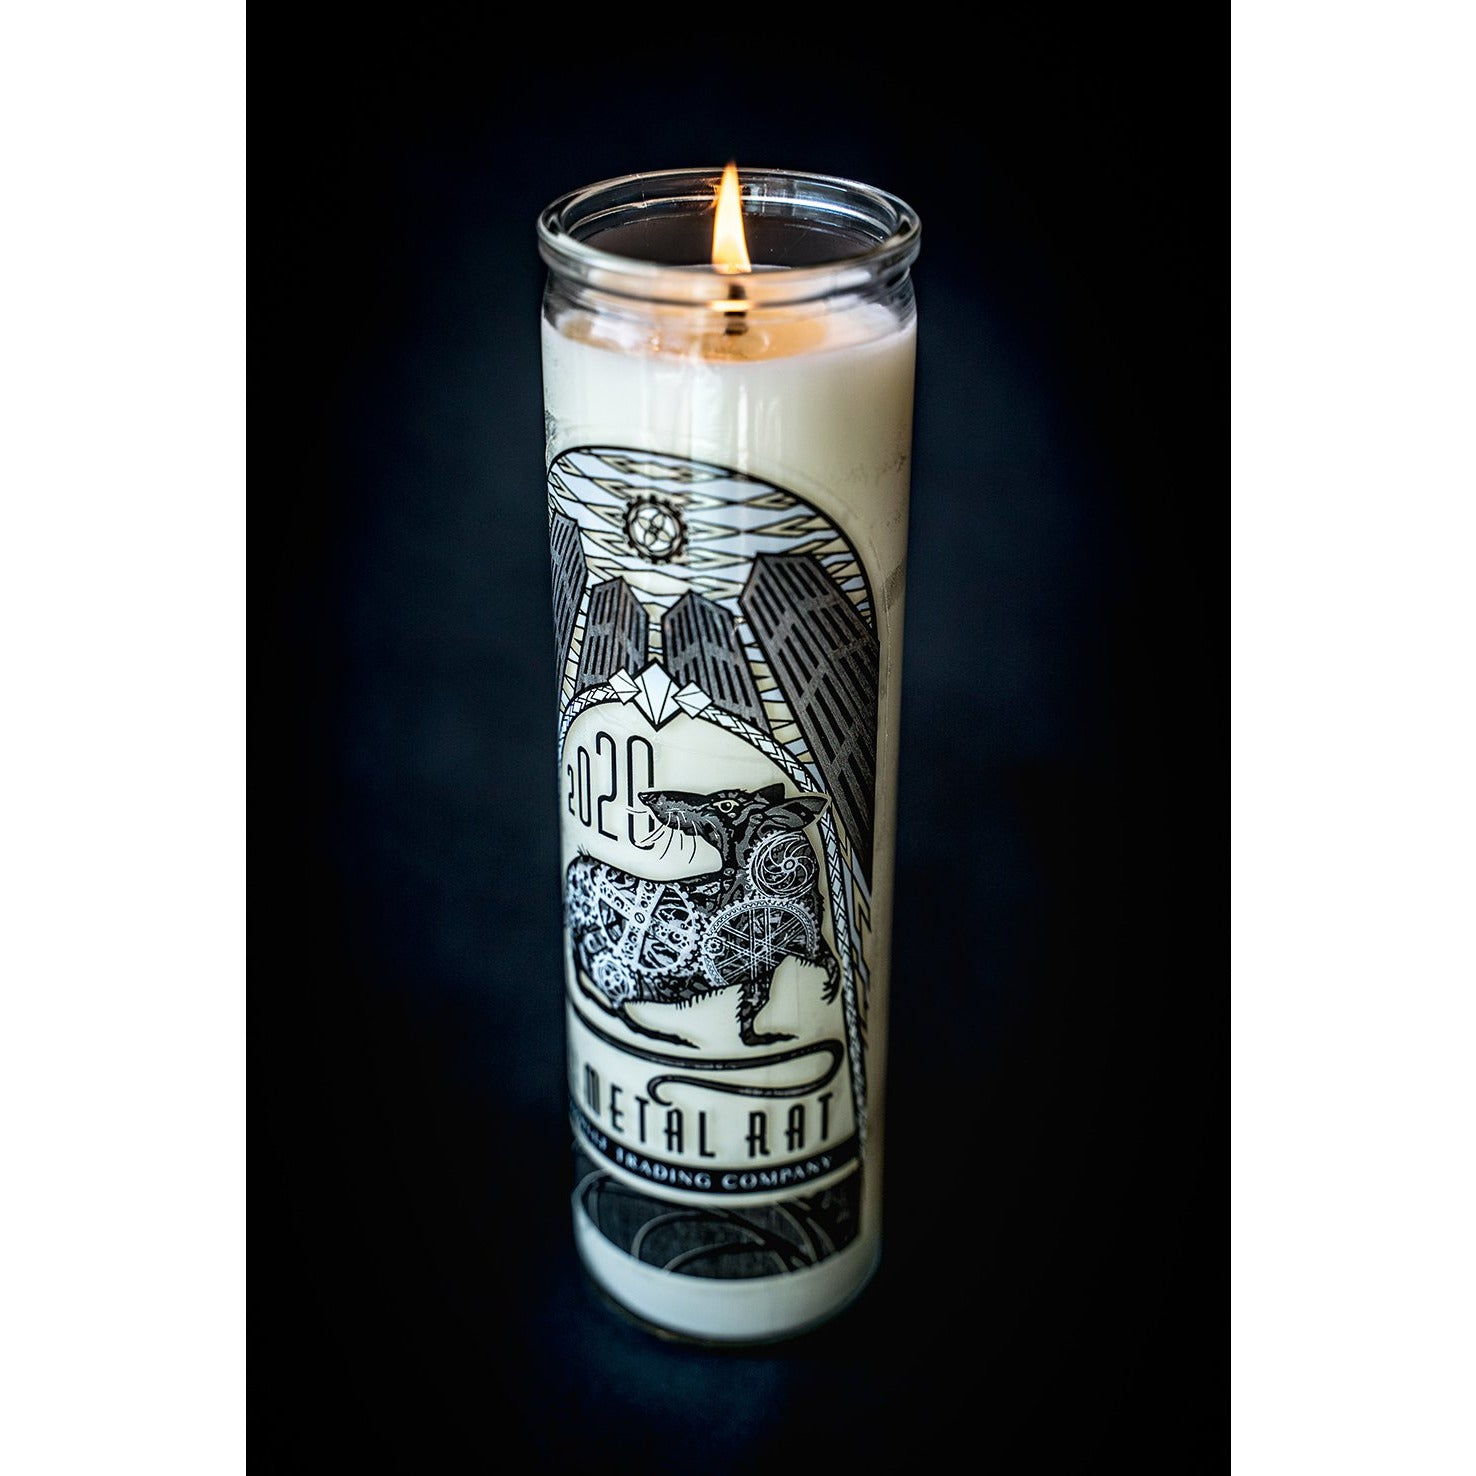 2020 Year of the Metal Rat - Celebration Candle